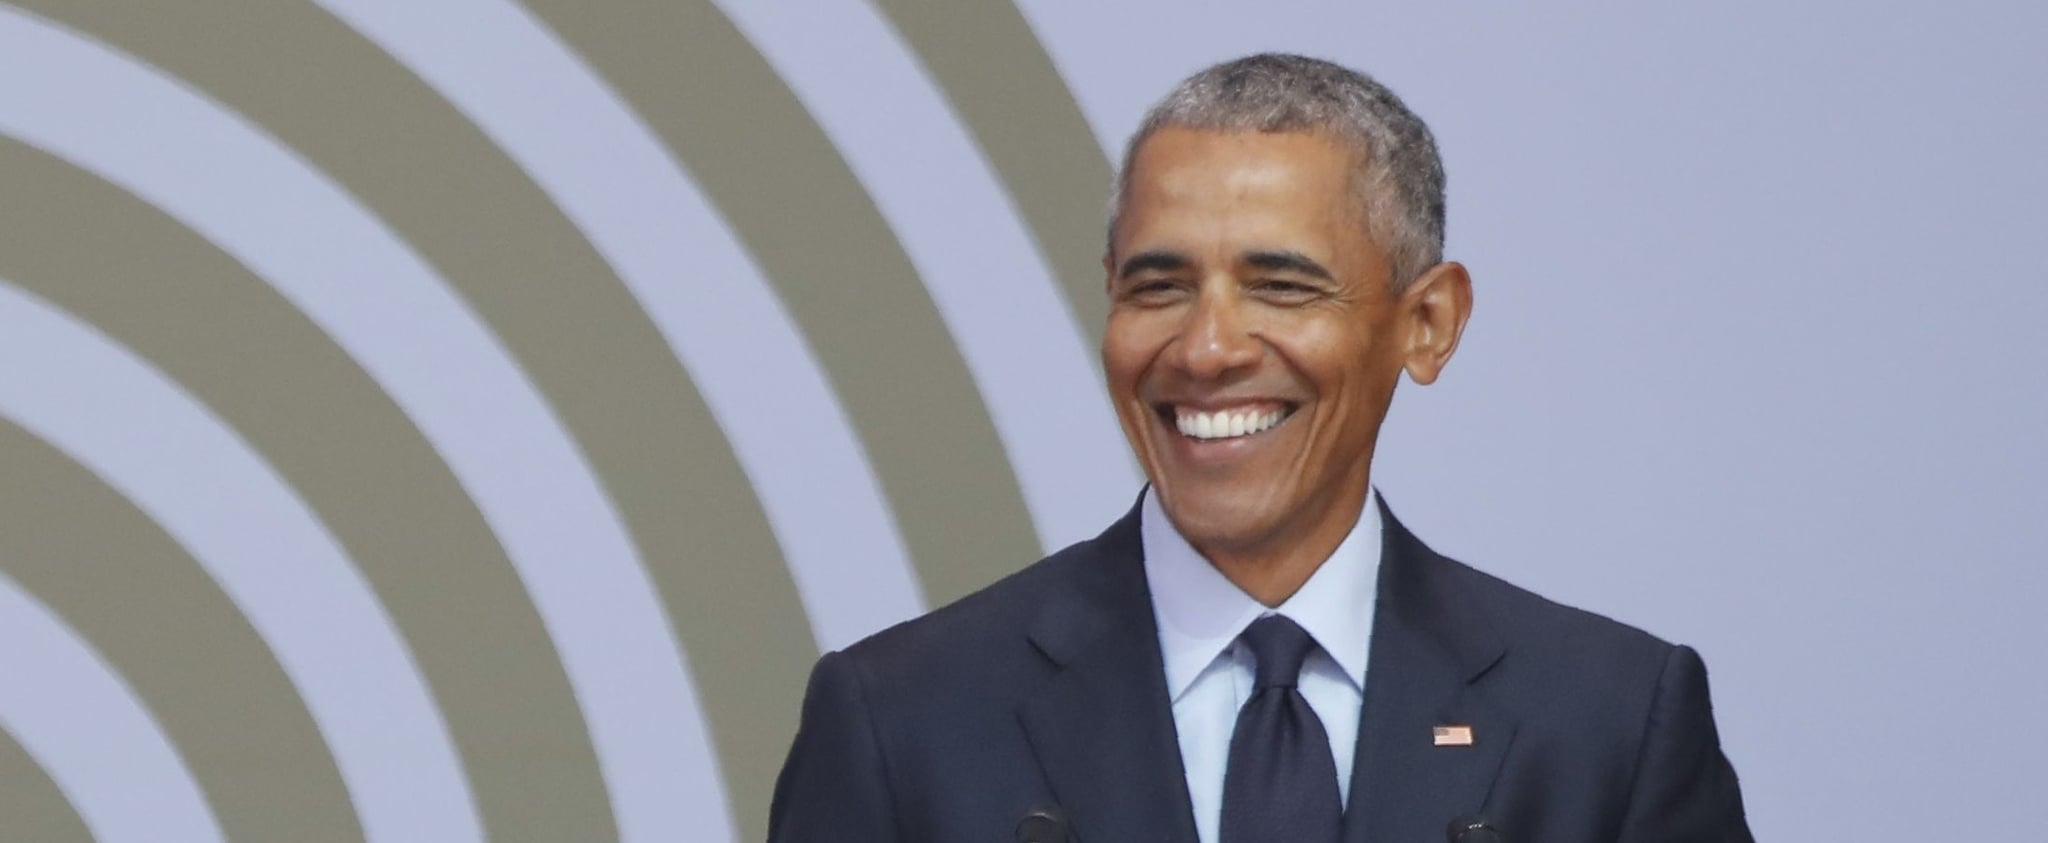 Barack Obama Quote About Men Getting on His Nerves July 2018